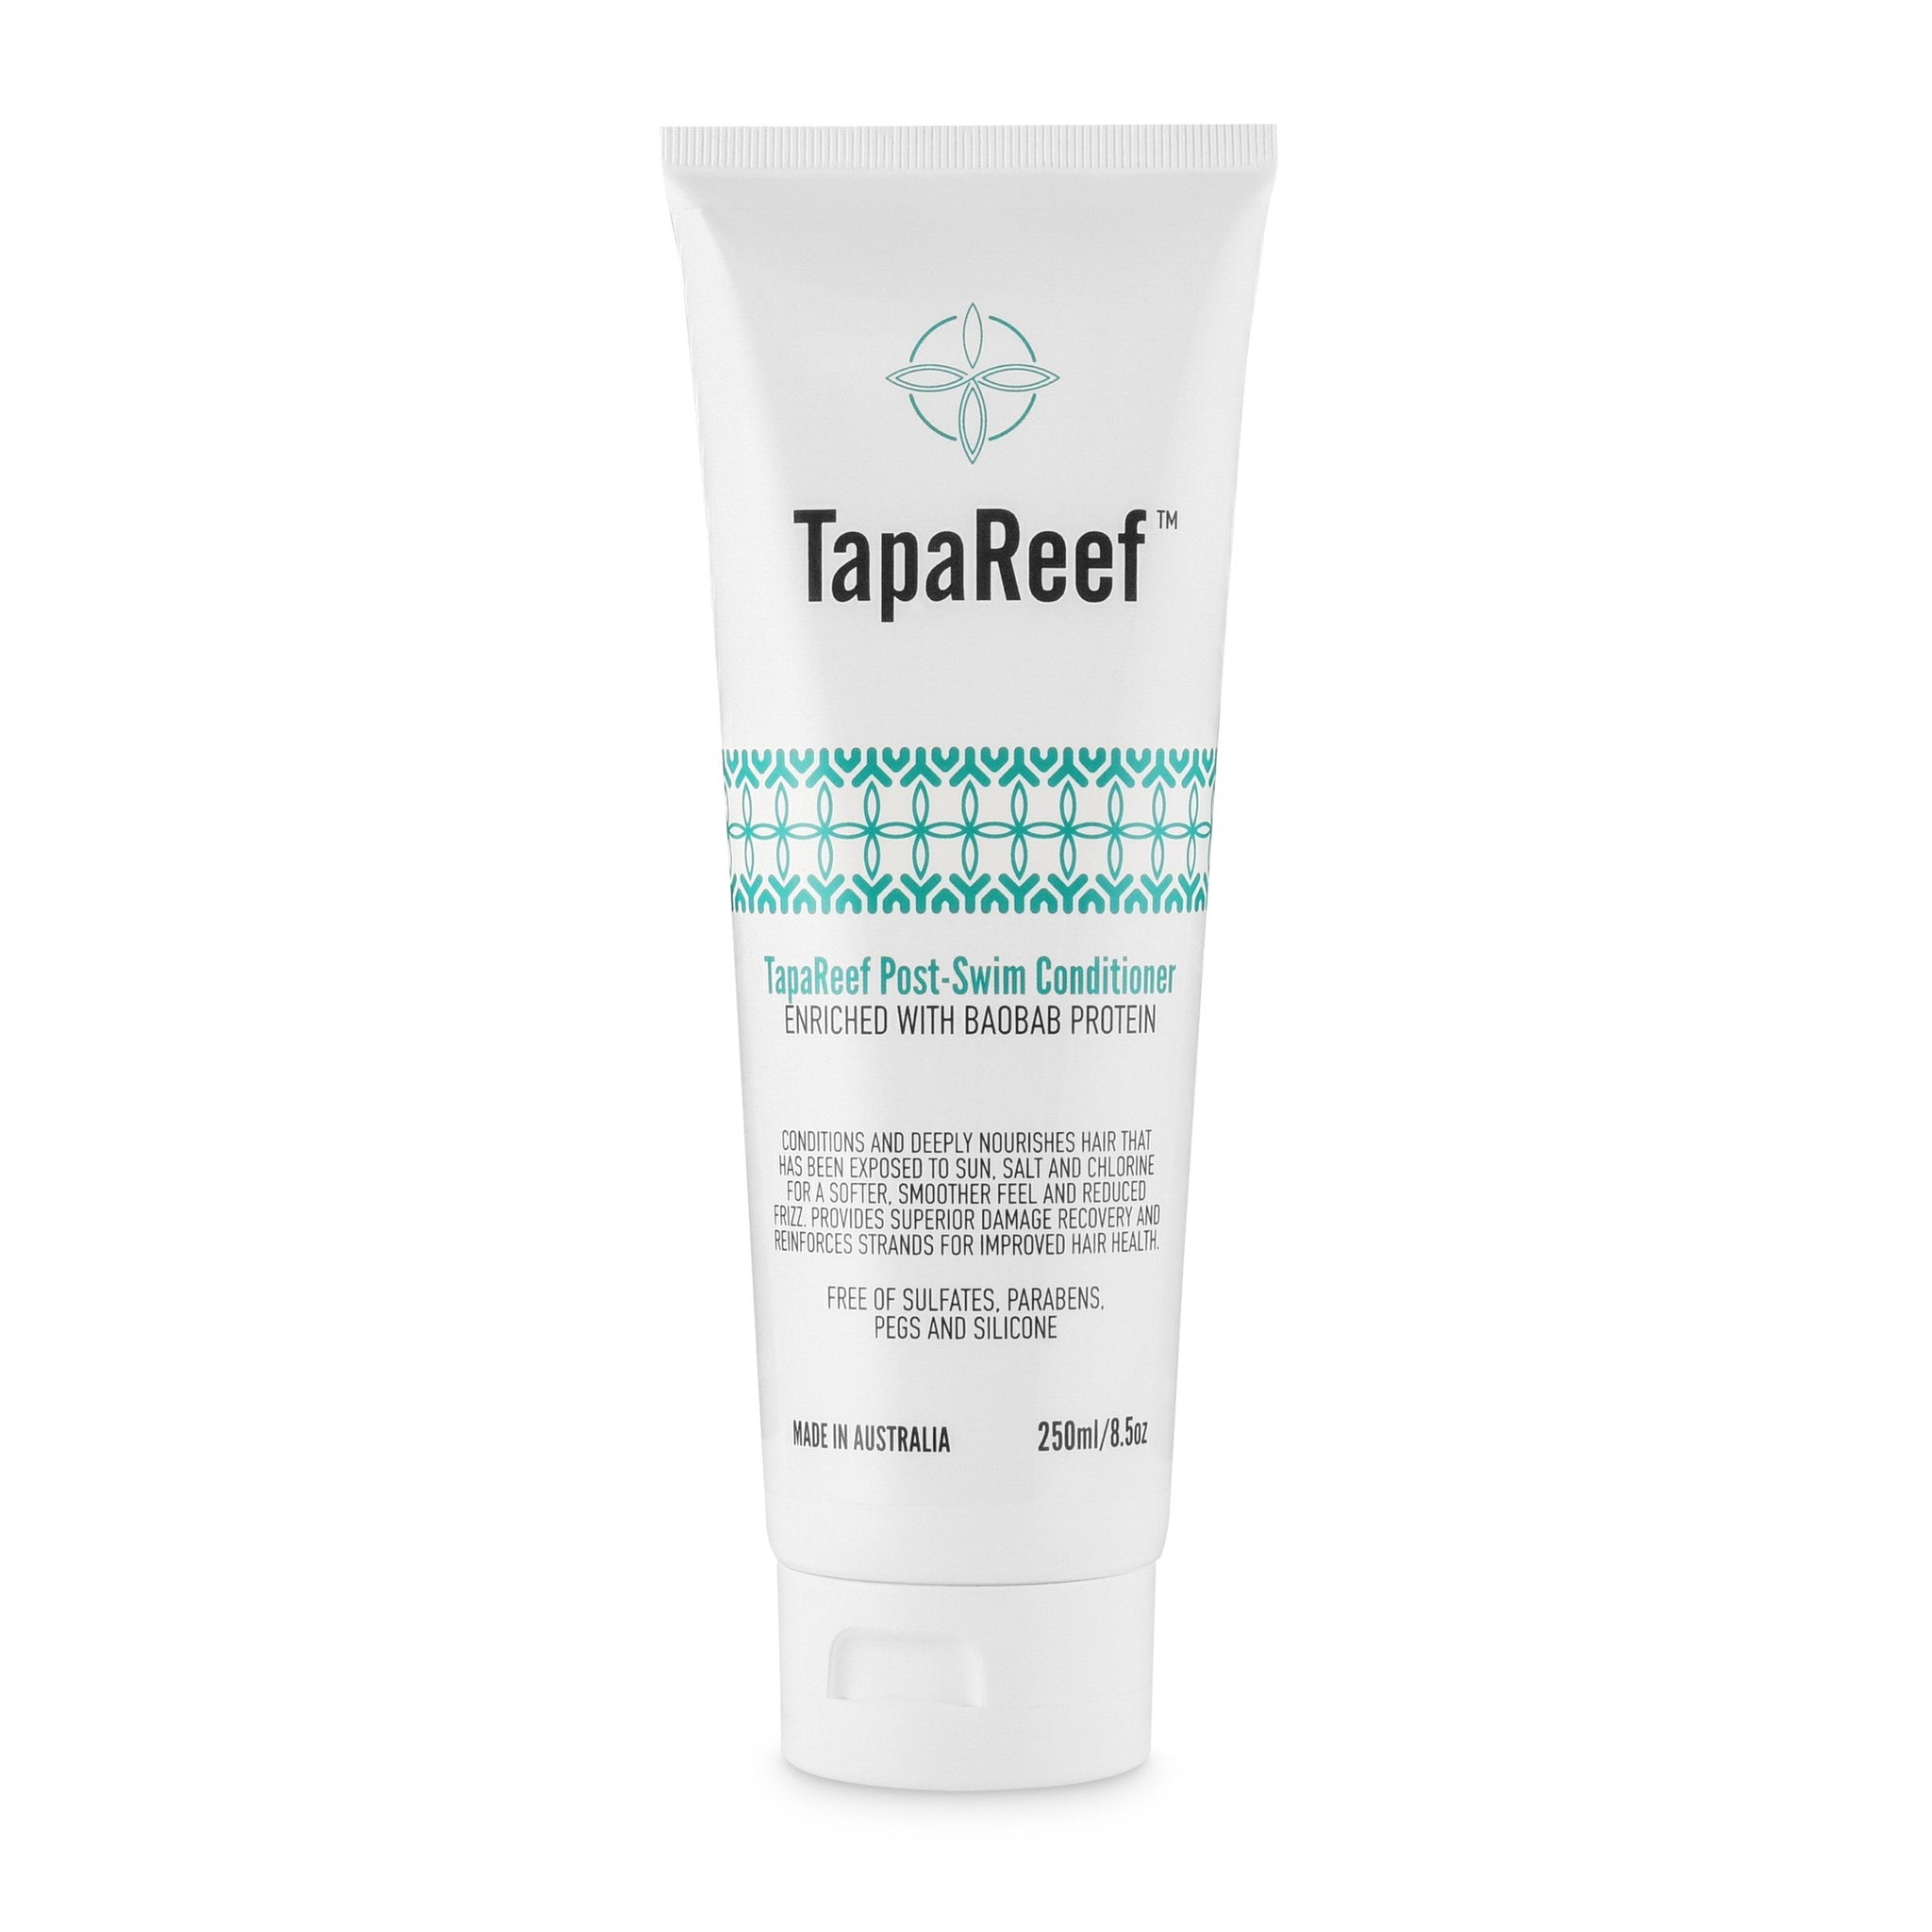 TapaReef Post-Swim Conditioner with Baobab nourishes and repairs hair damaged from sun, salt water and chlorine